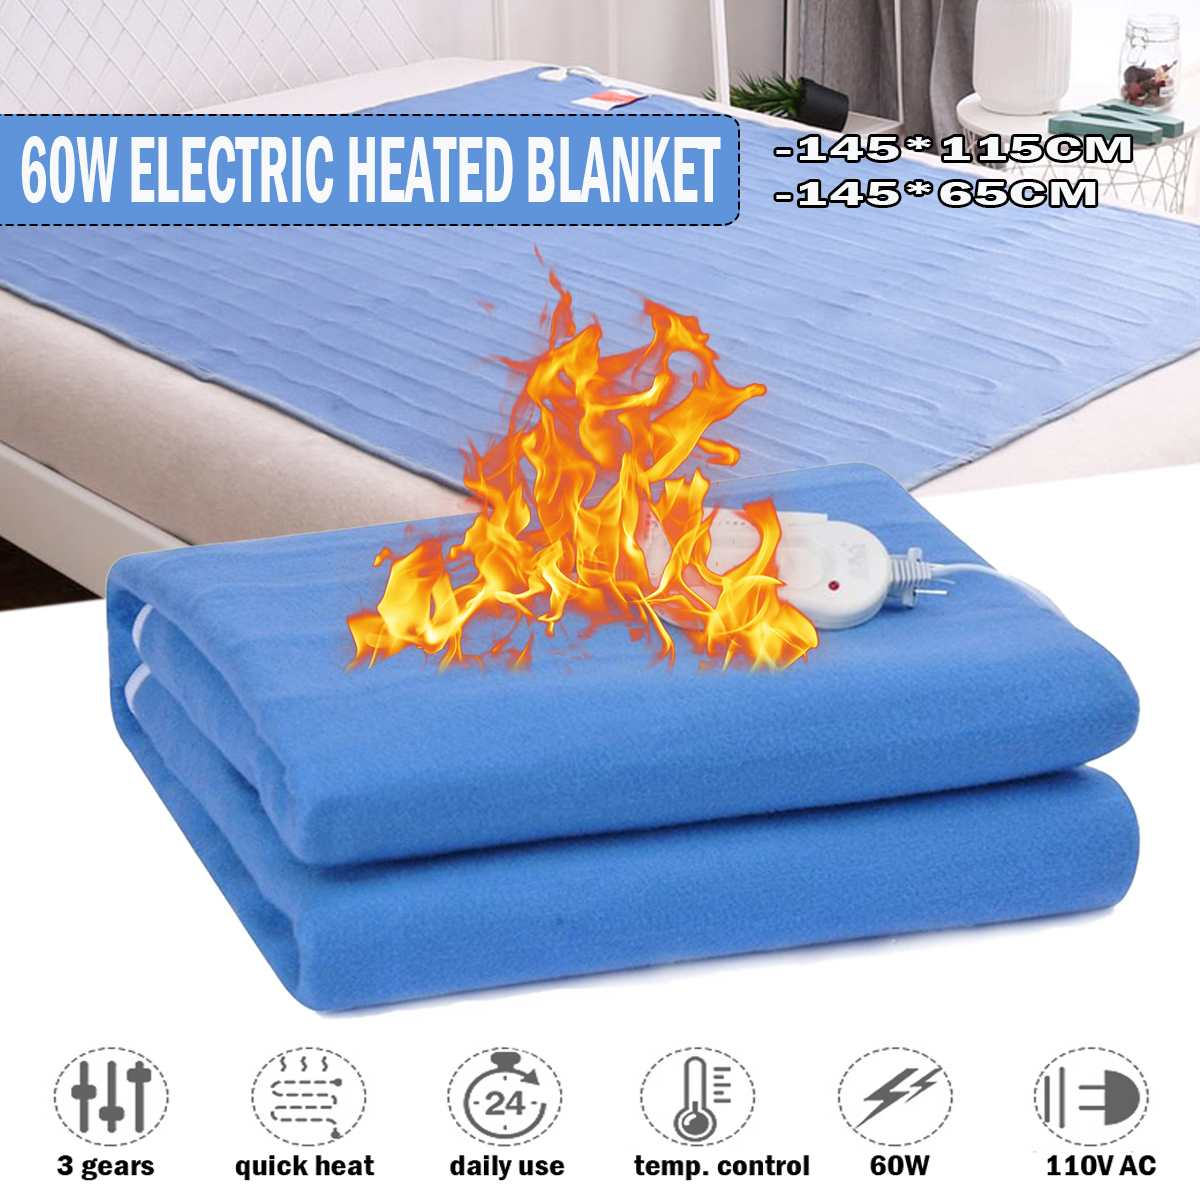 Winter Electric Blanket Heater Double Single Body Warmer Heated Blanket Thermostat Electric Heating Blanket Warm Pad